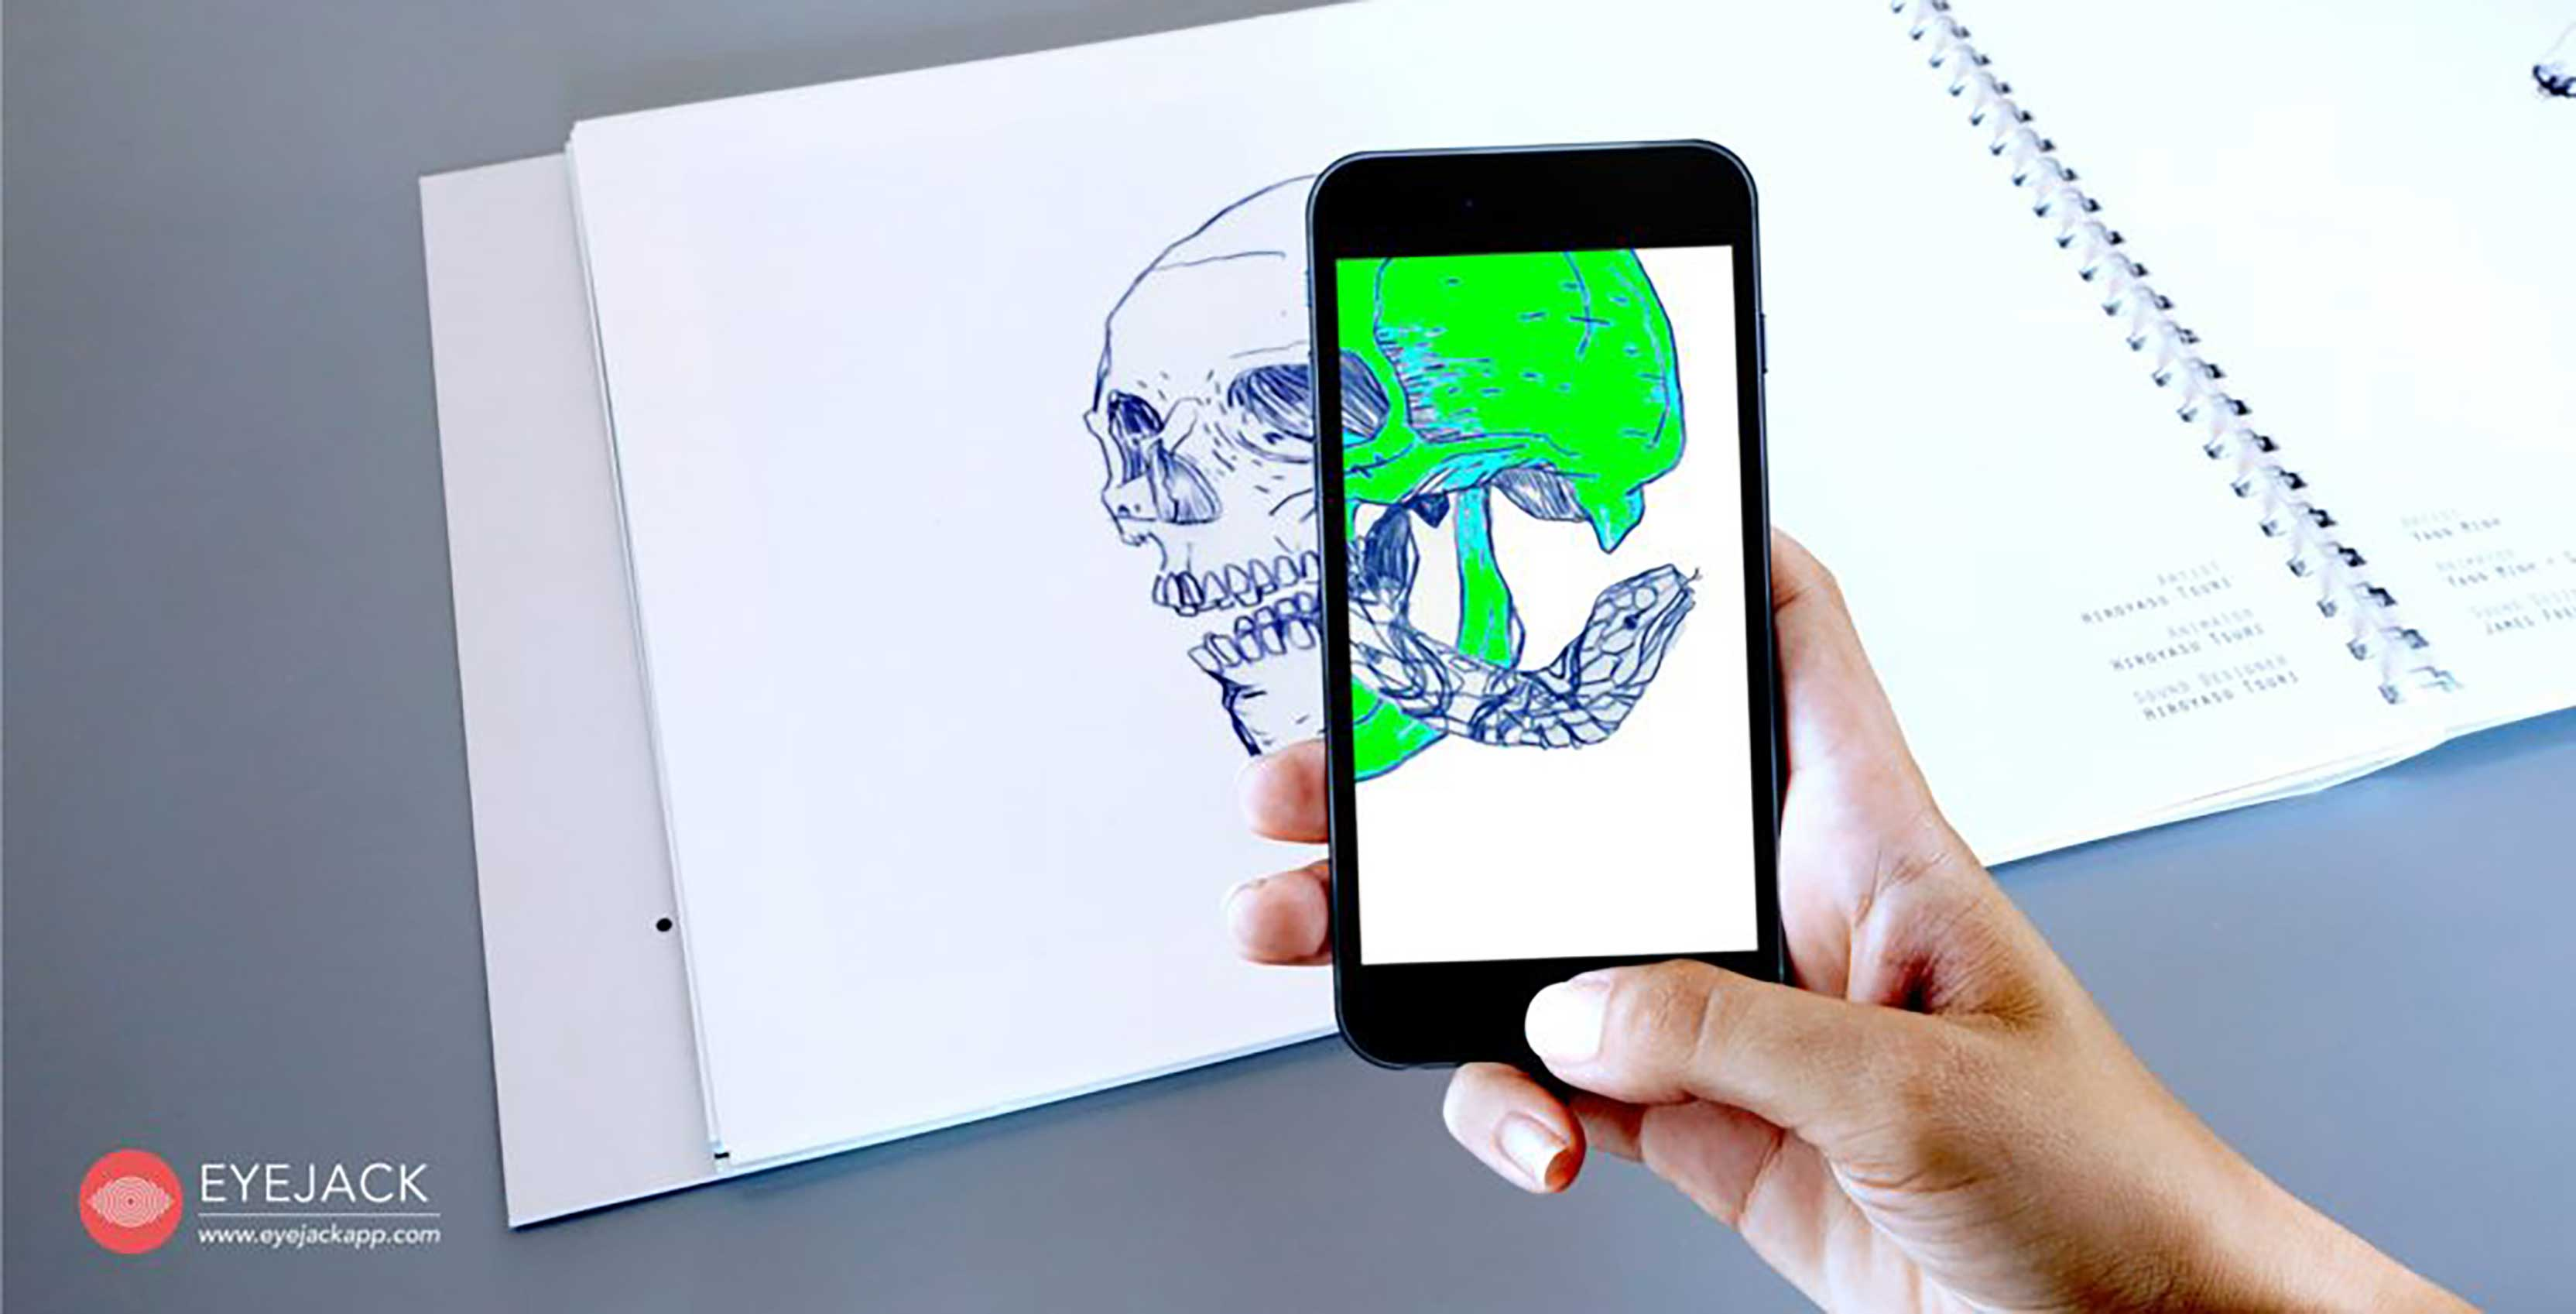 augmented reality artwork on phone